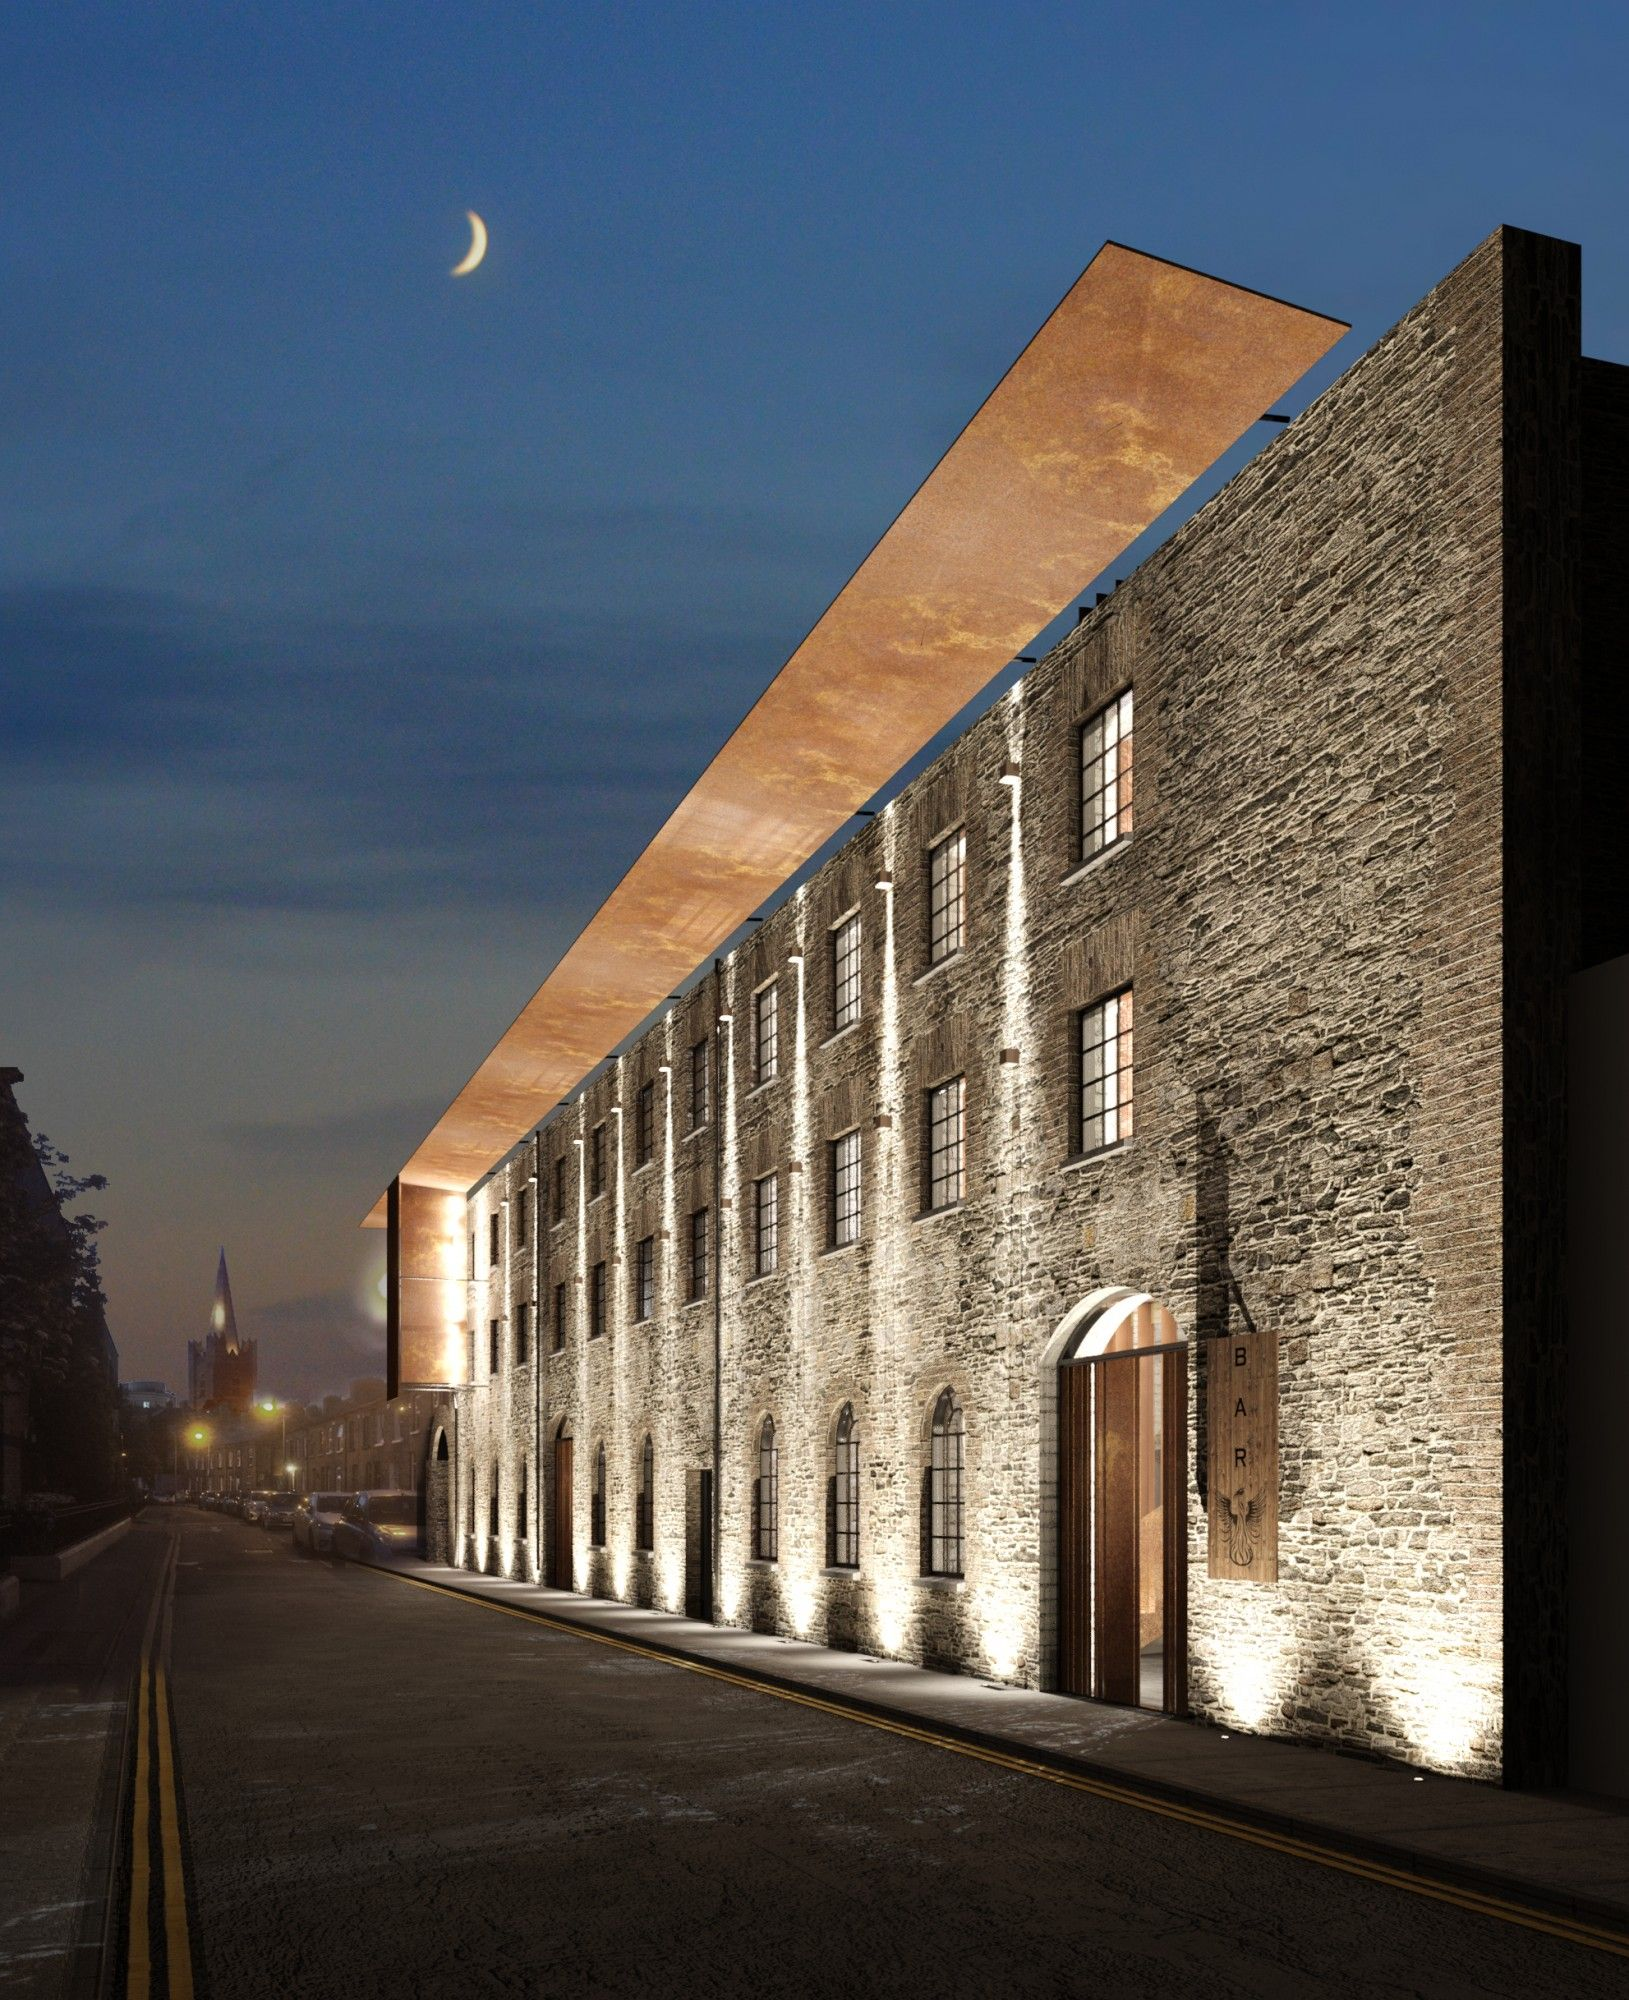 Craft distillery jules o 39 reilly exterior lighting - Revit exterior rendering settings ...